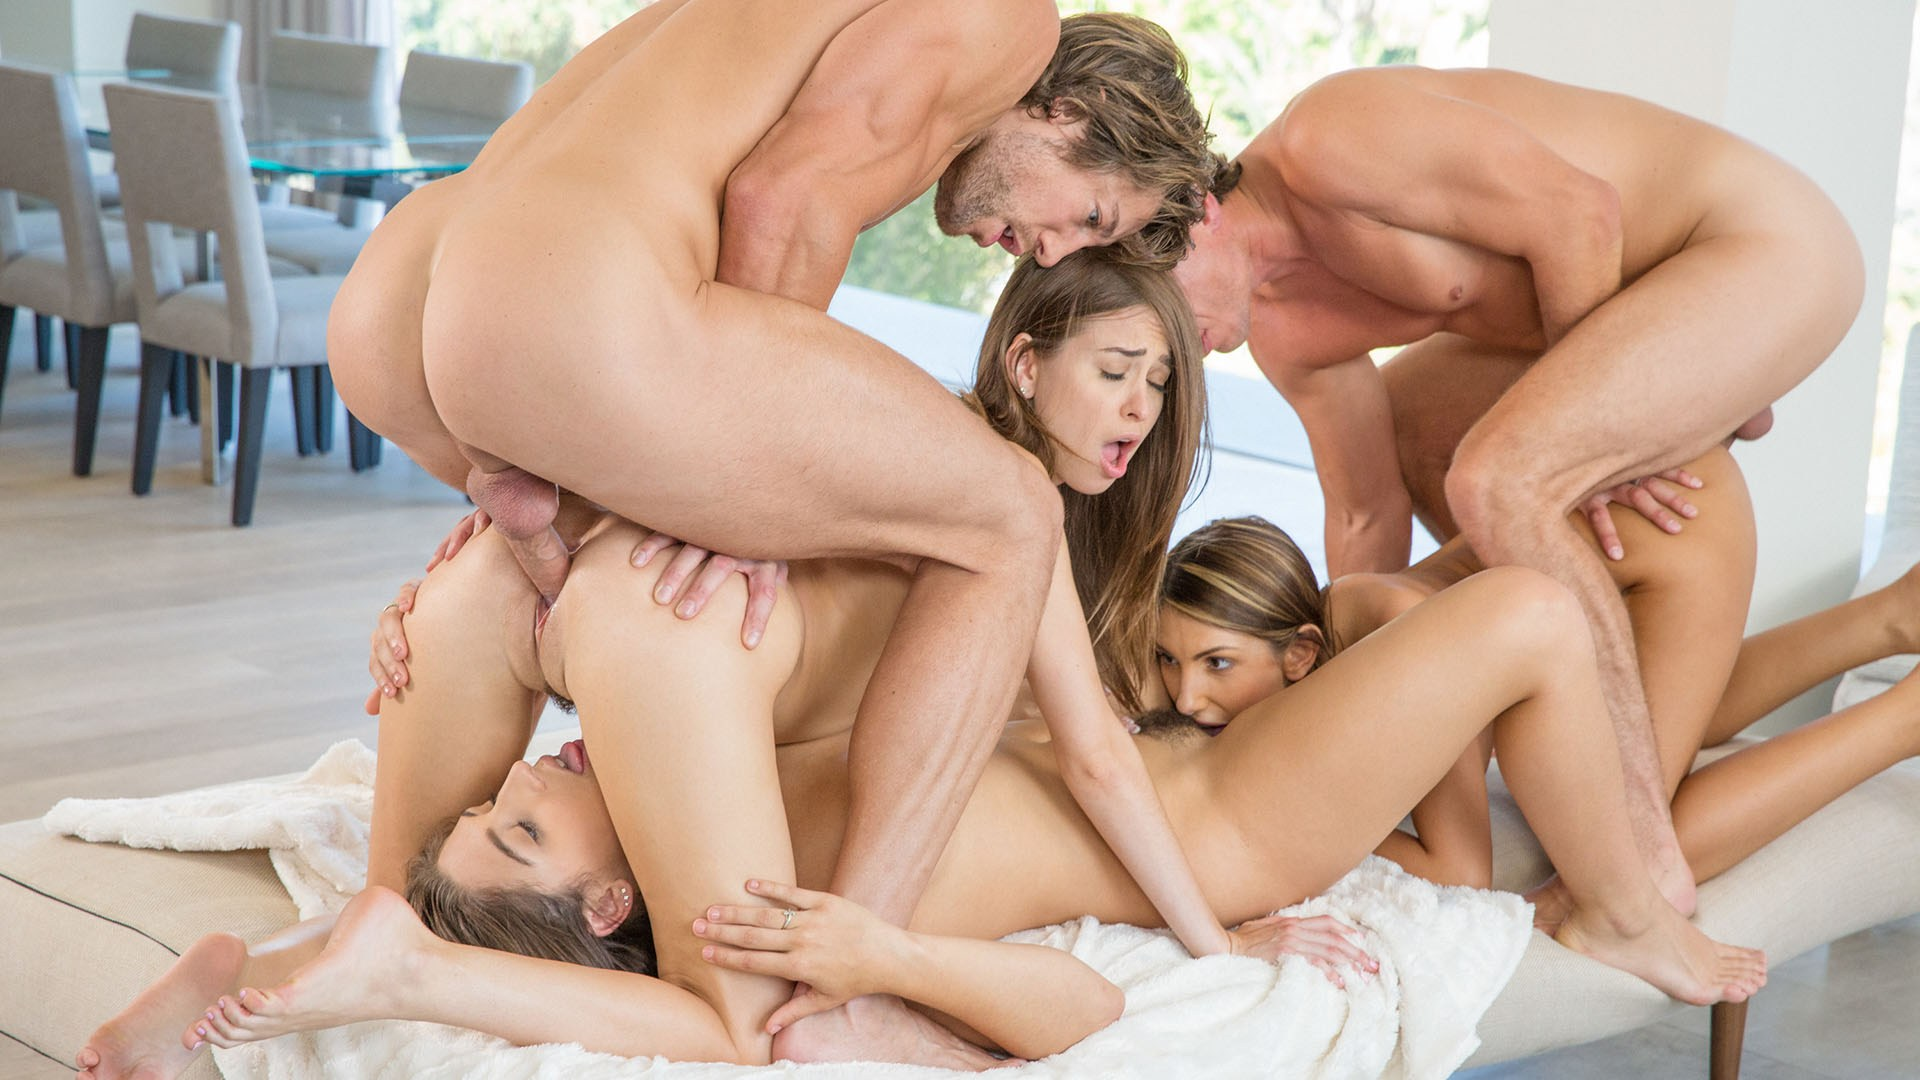 Free group sex porn videos